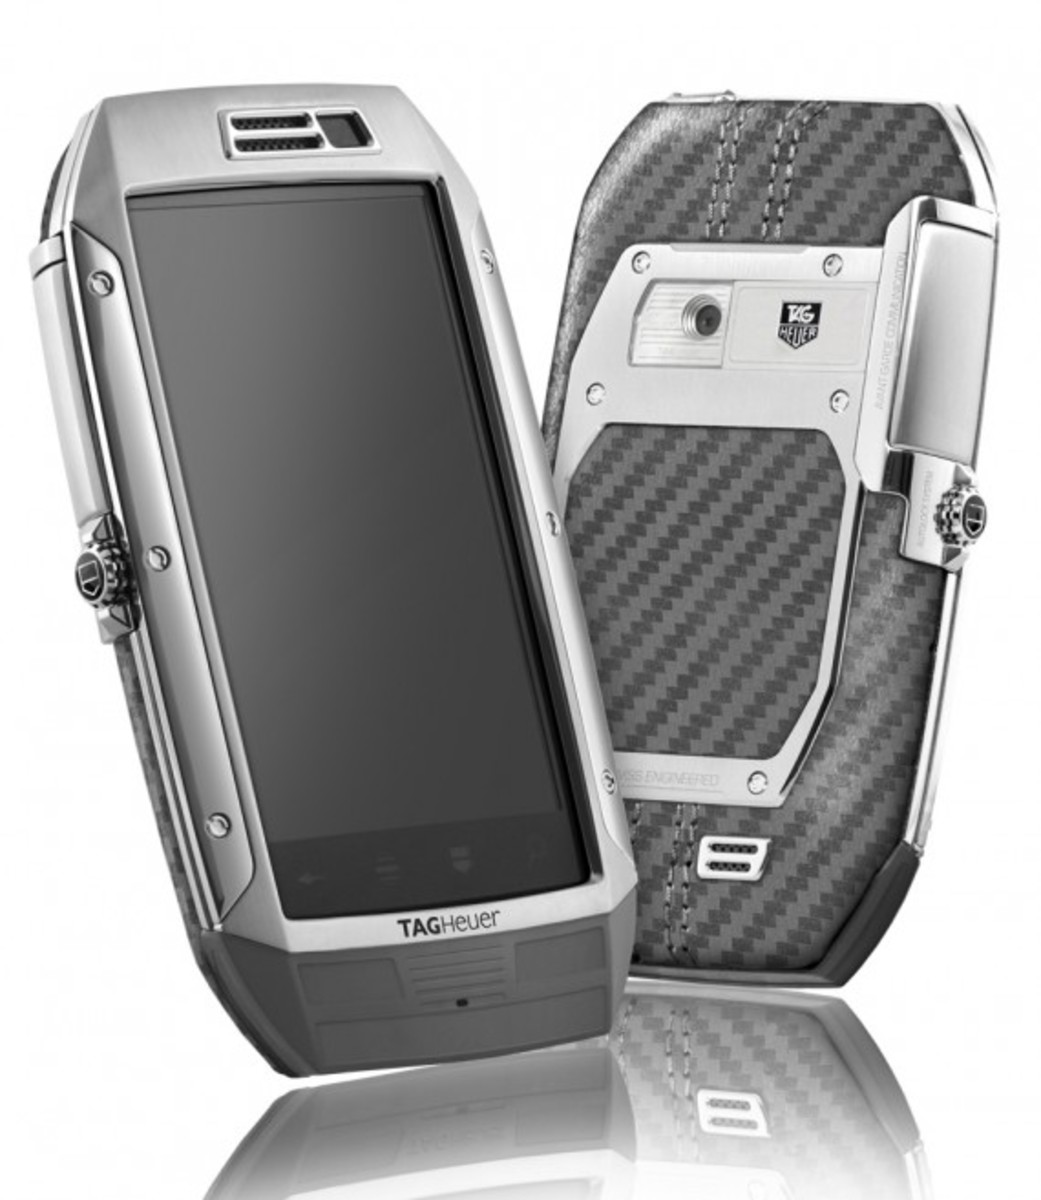 tag-heuer-link-mobile-phone-03